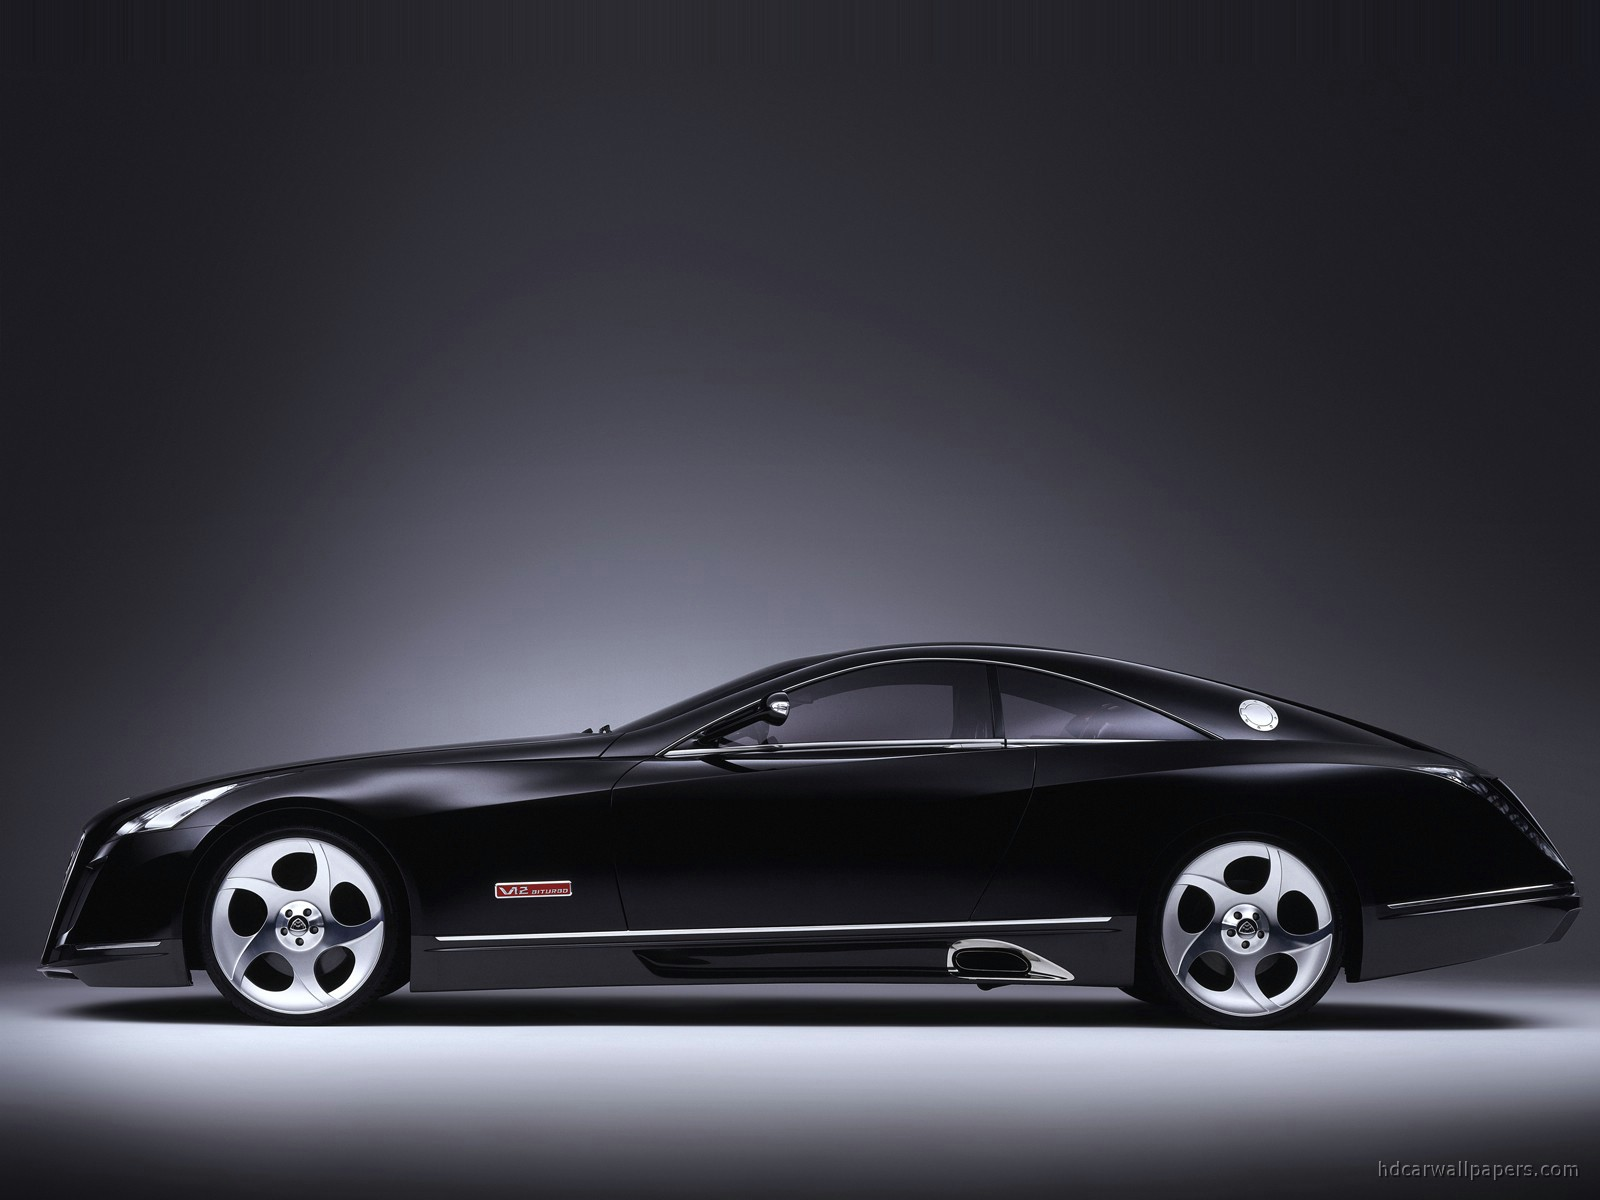 Maybach Exelero Wallpaper HD Car Wallpapers ID 1088 1600x1200